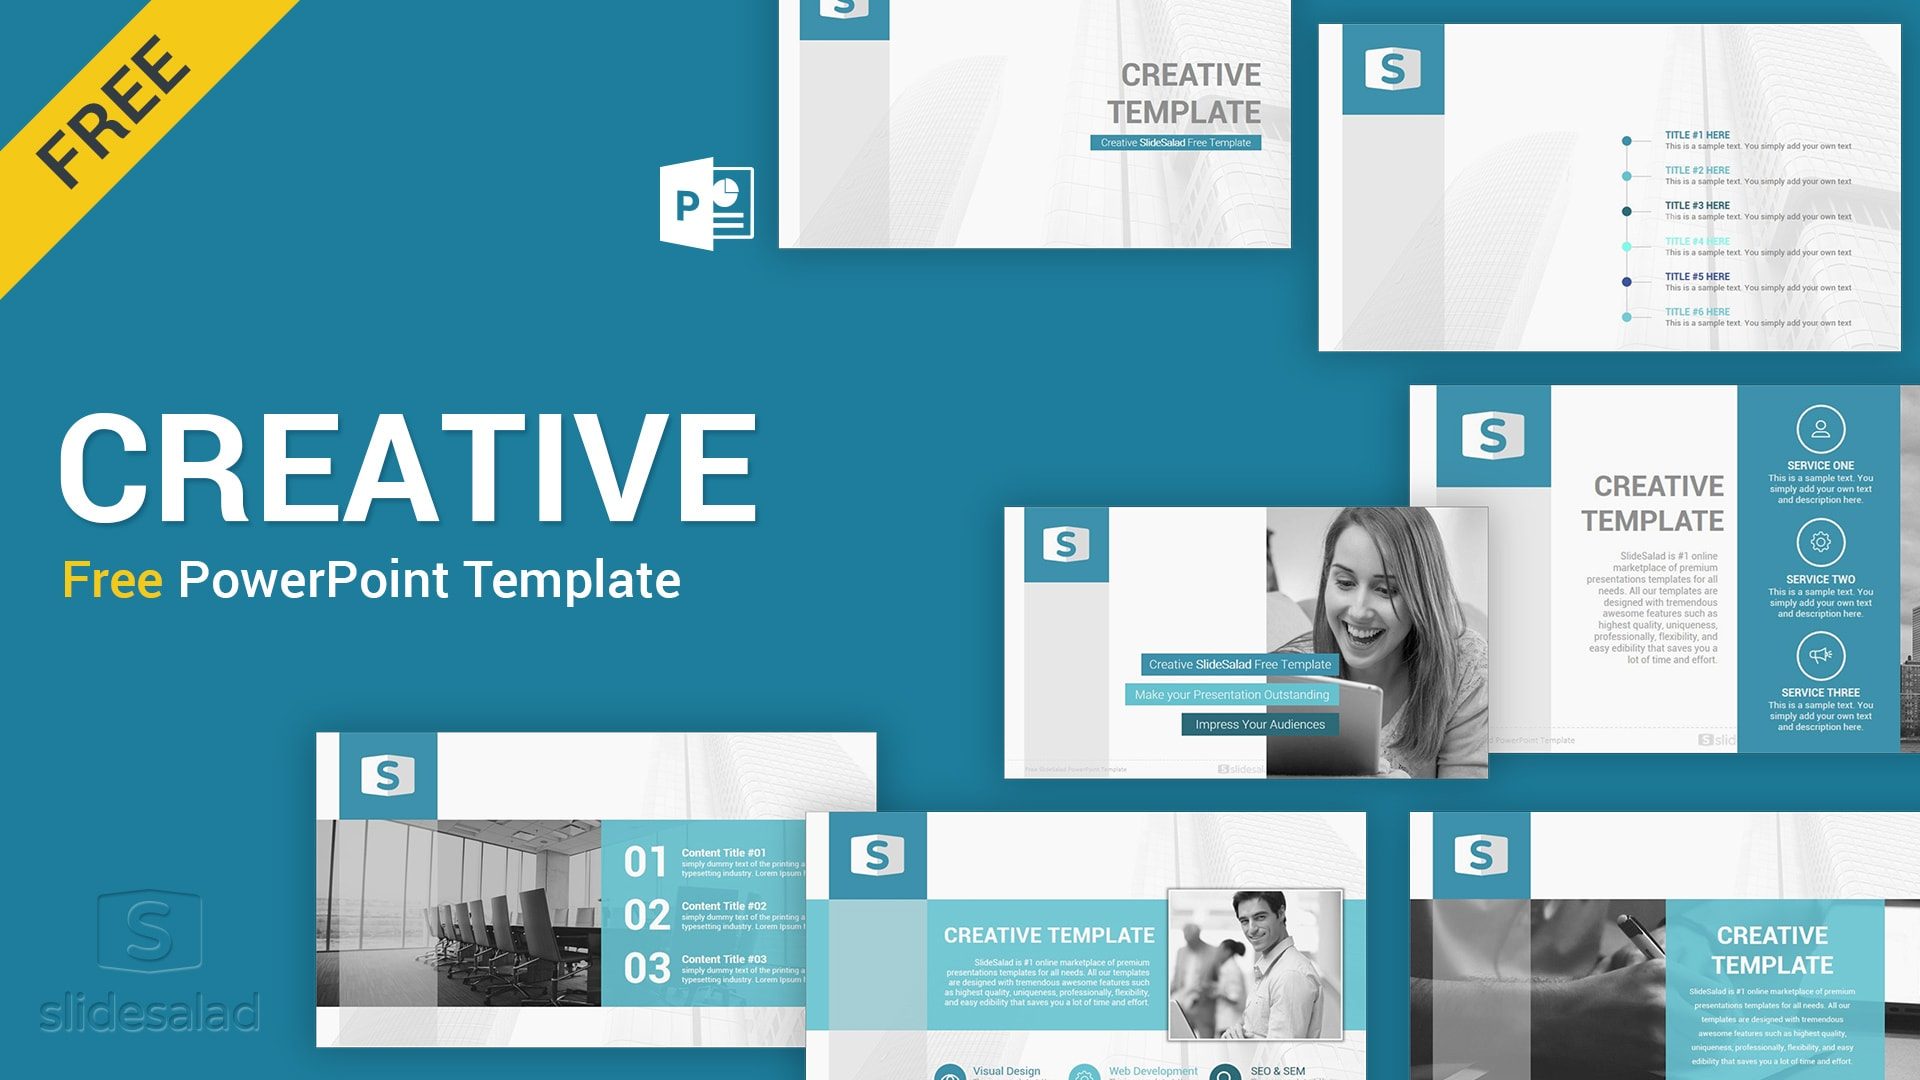 Creative Free Download PowerPoint Template - SlideSalad